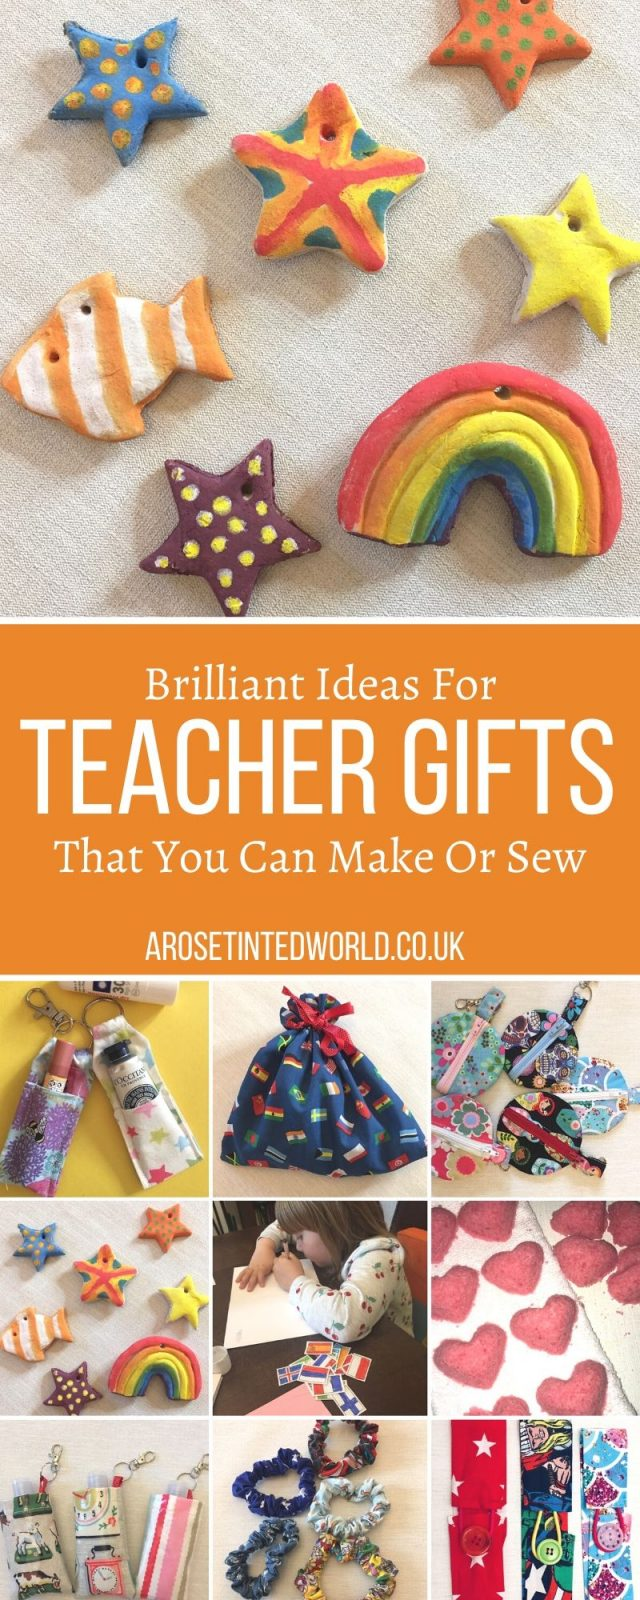 Teacher Gifts That You Can Make Or Sew - some great ideas for hand made thank you gifts to create for a teacher. Money saving presents that you can make at home. Show some love to the special teacher in your life with this gift guide full of brilliant ideas that they will go crazy for. Perfect for Christmas, Teacher Appreciation Week, end of year and end of term.